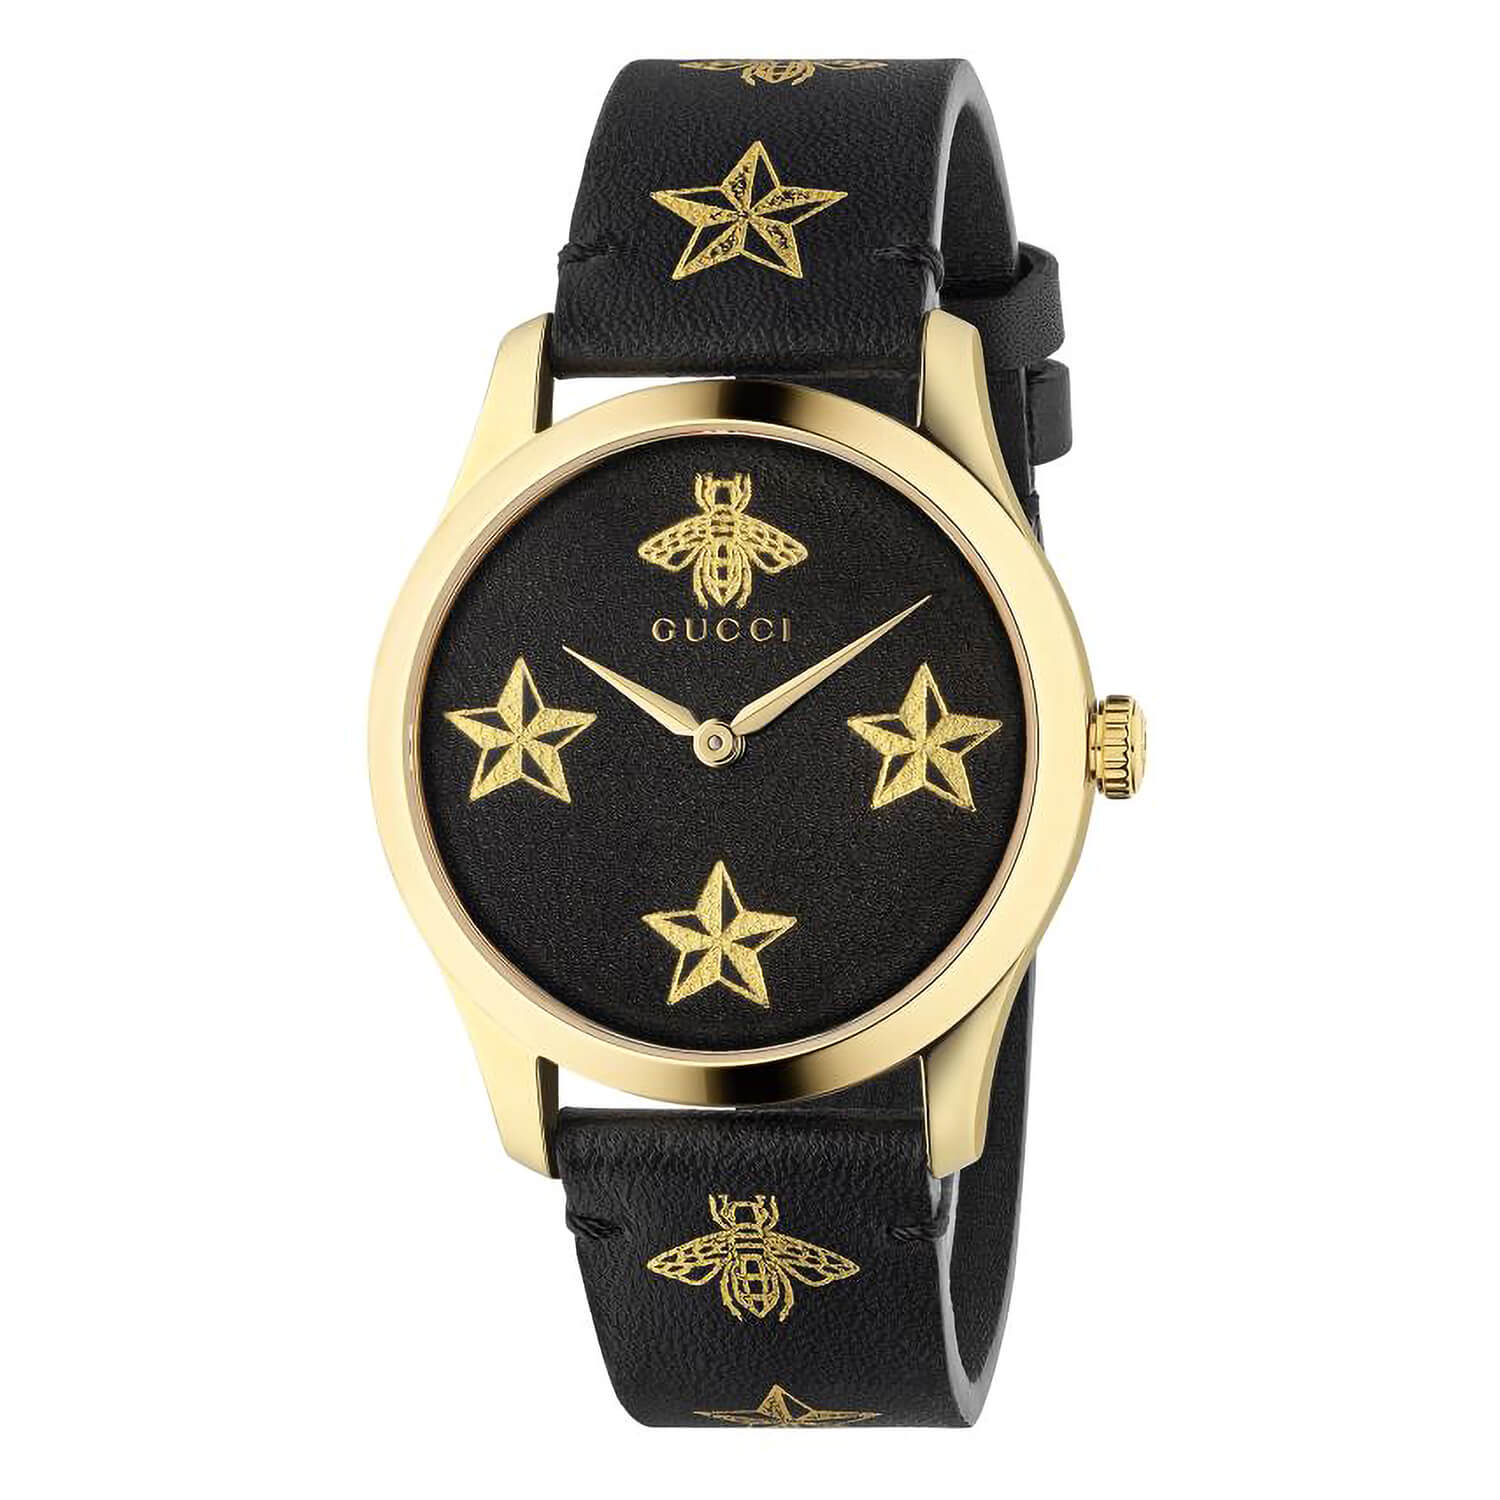 Gucci G-Timeless Quartz Yellow Gold PVD Black Dial Unisex Watch